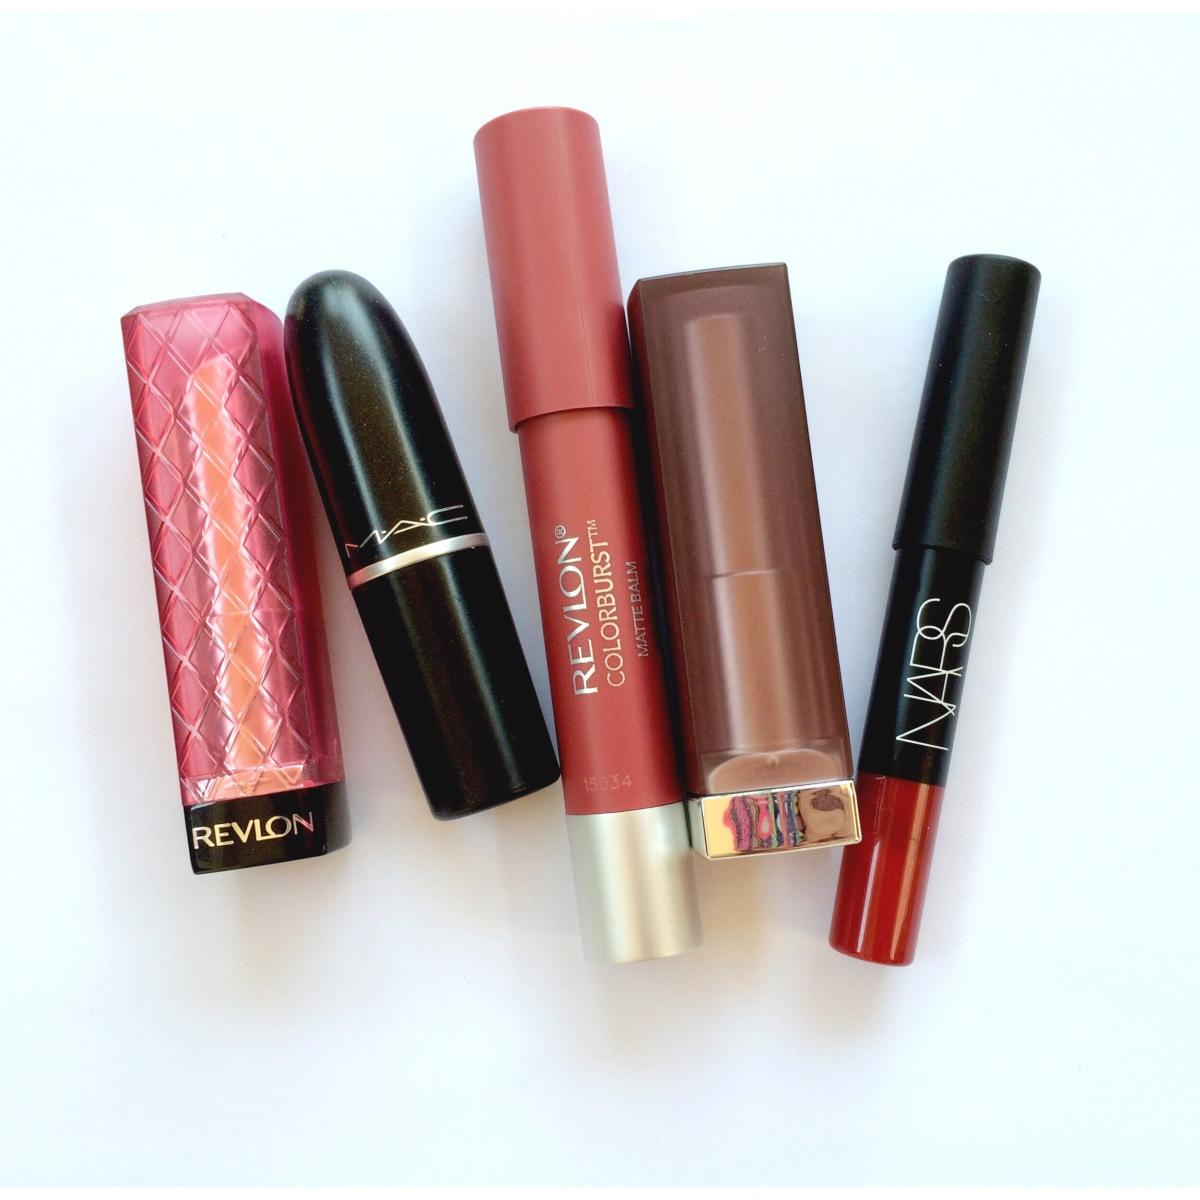 5 Lipsticks to Get You Ready forFall